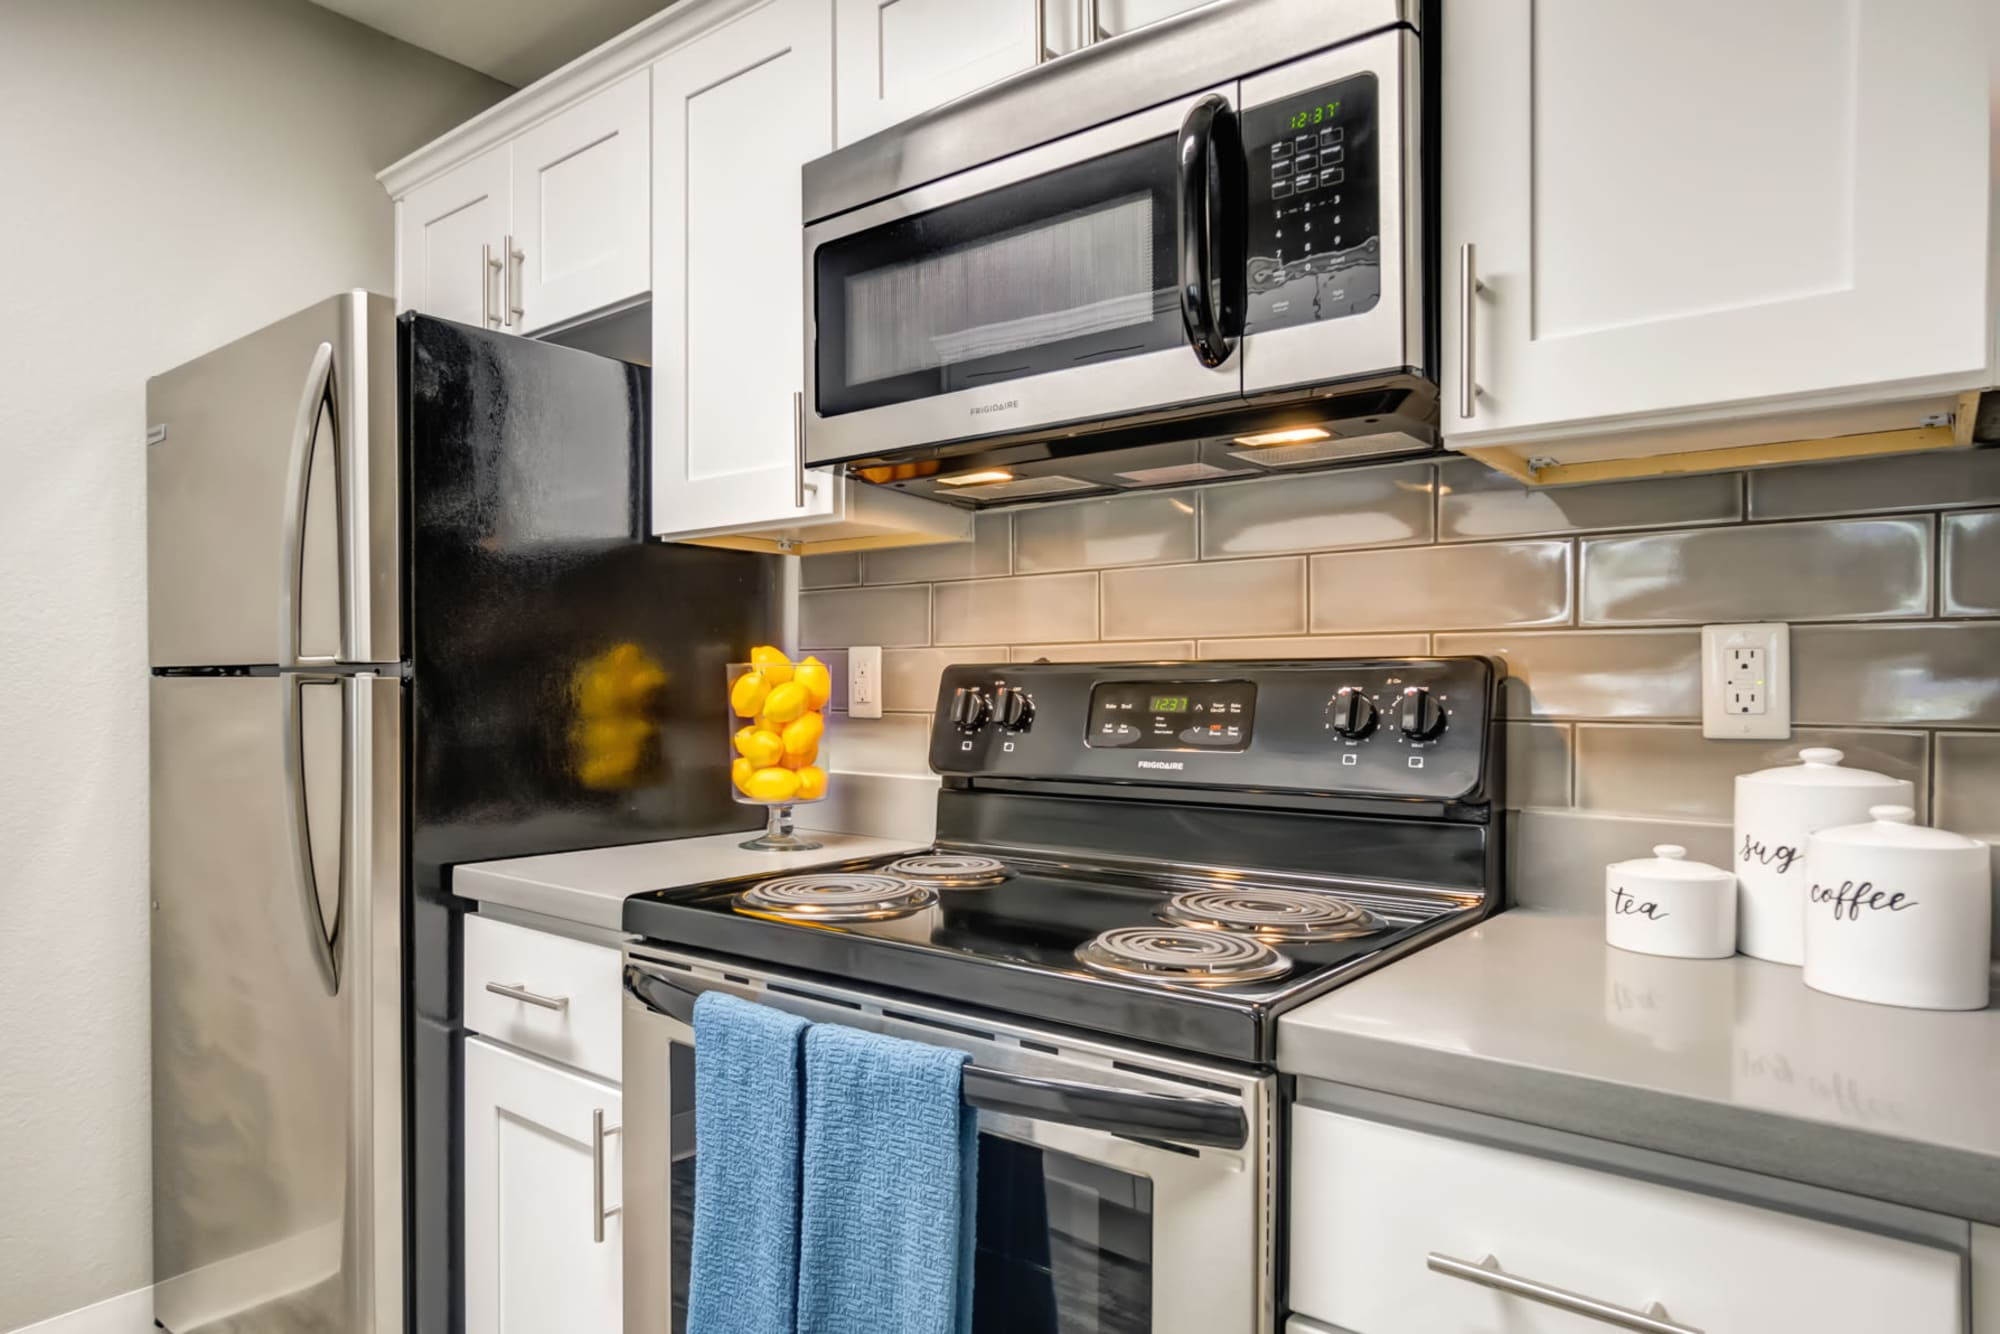 A kitchen, with tile backsplash at Serramonte Ridge Apartment Homes in Daly City, California